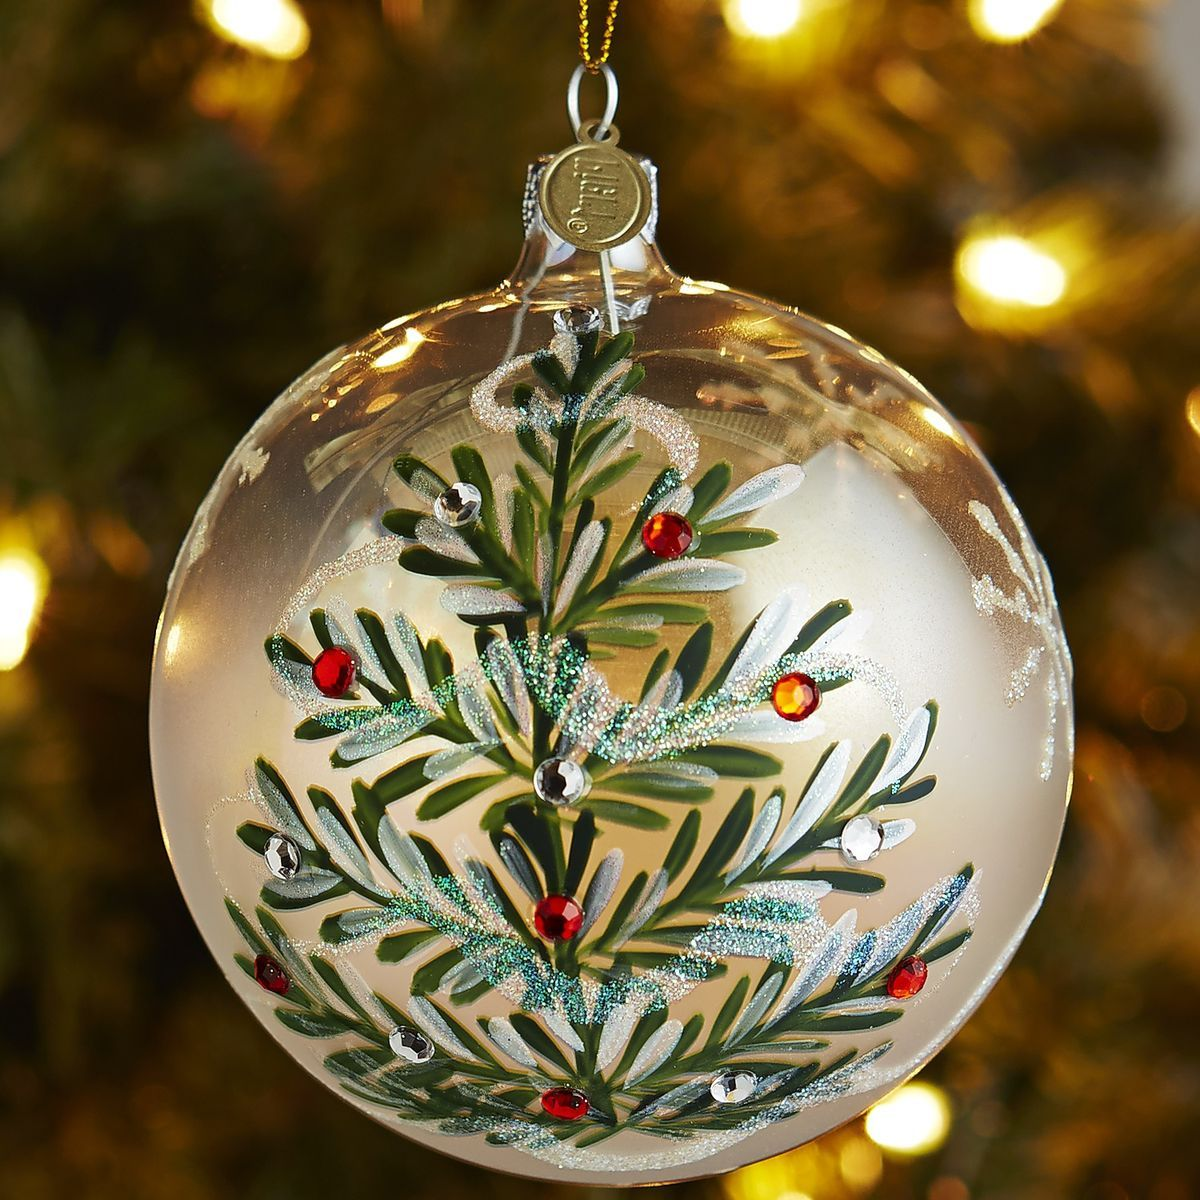 Christmas Ornaments Online Shopping Europe: European Glass Frost Gem Tree Ornament